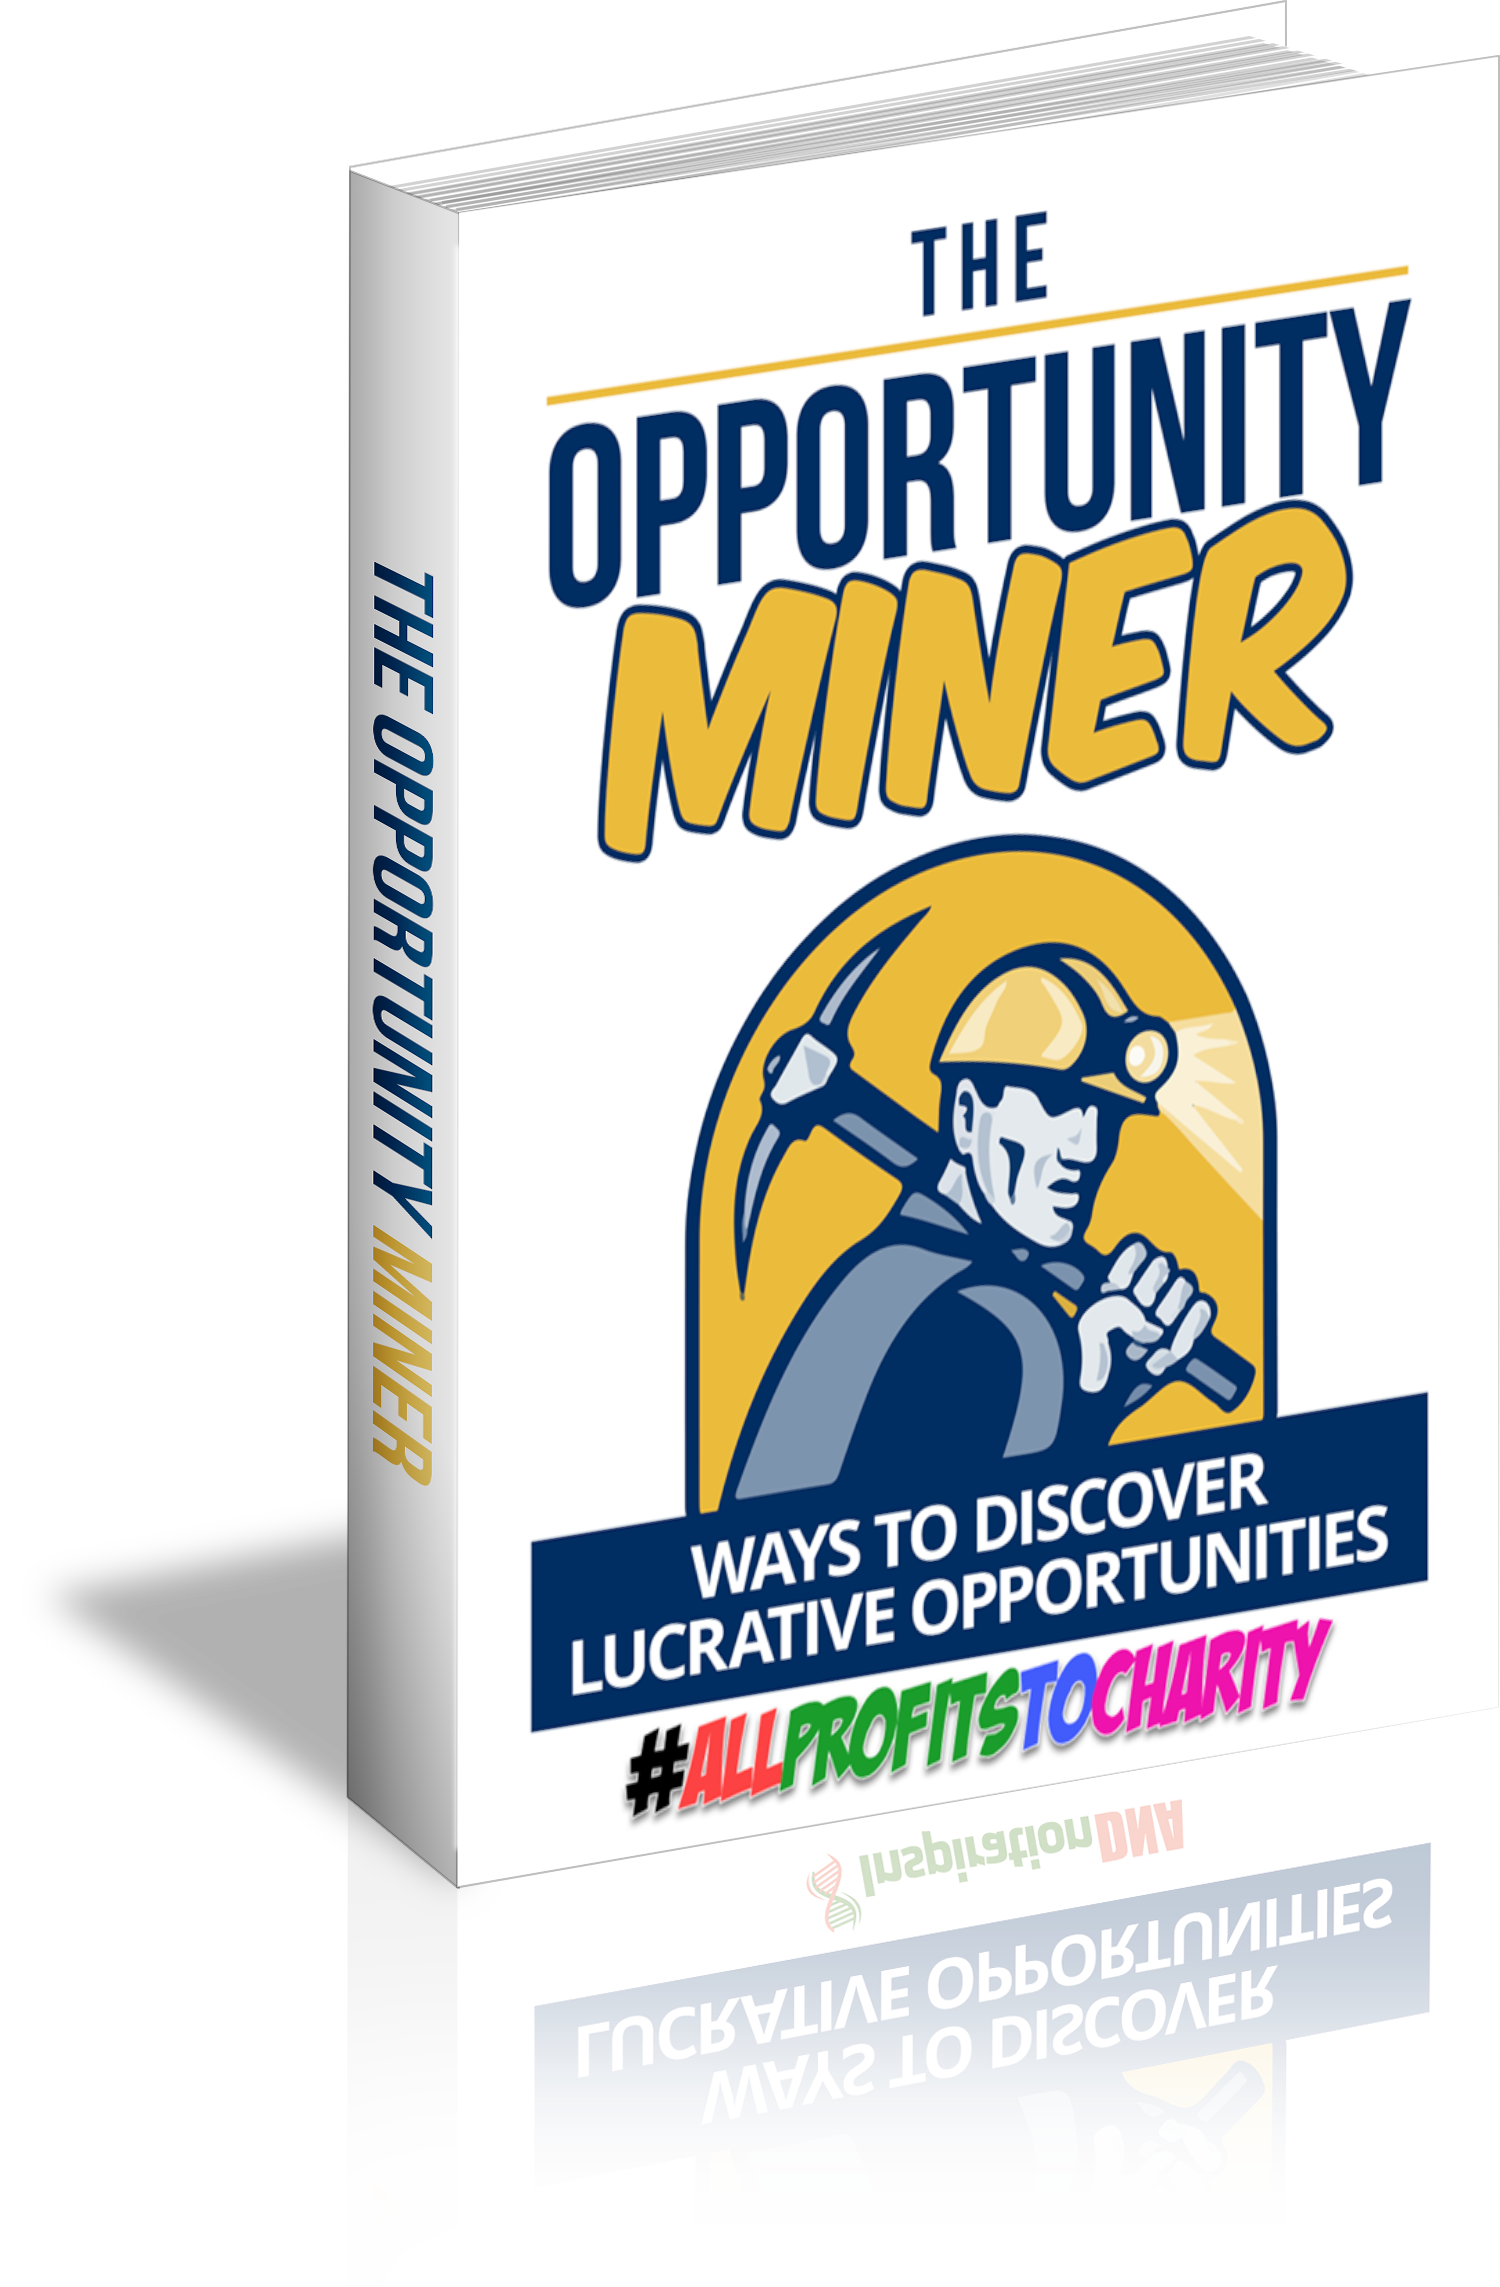 The Opportunity Miner cover